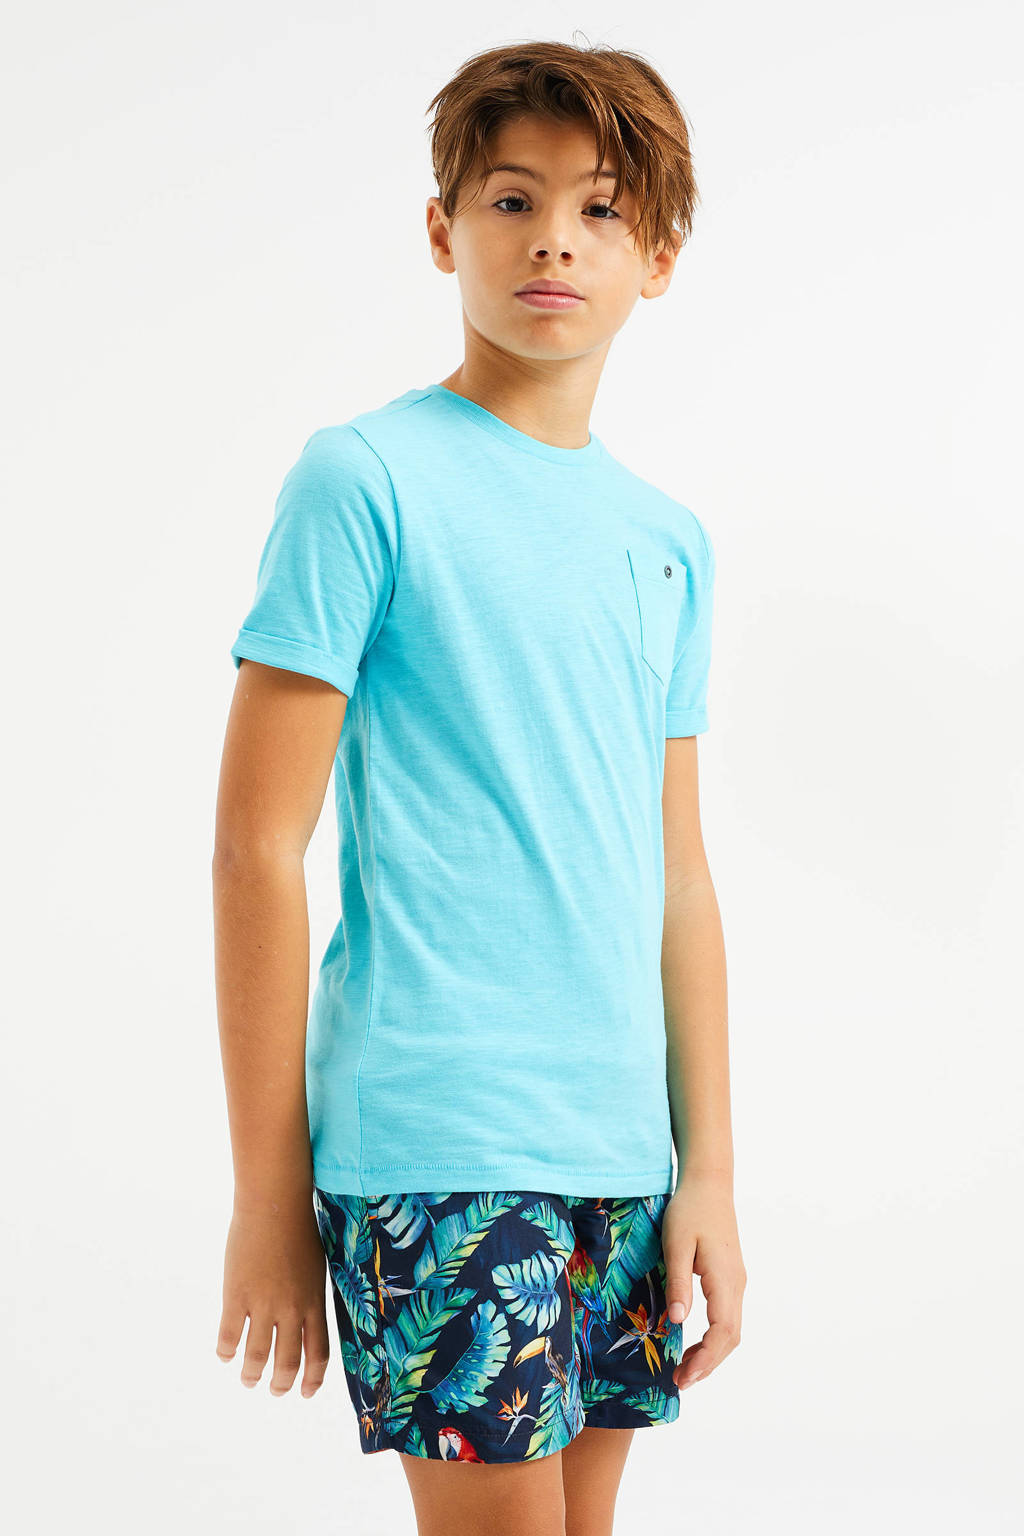 WE Fashion zwemshort met all over print donkerblauw/lichtblauw, Donkerblauw/lichtblauw